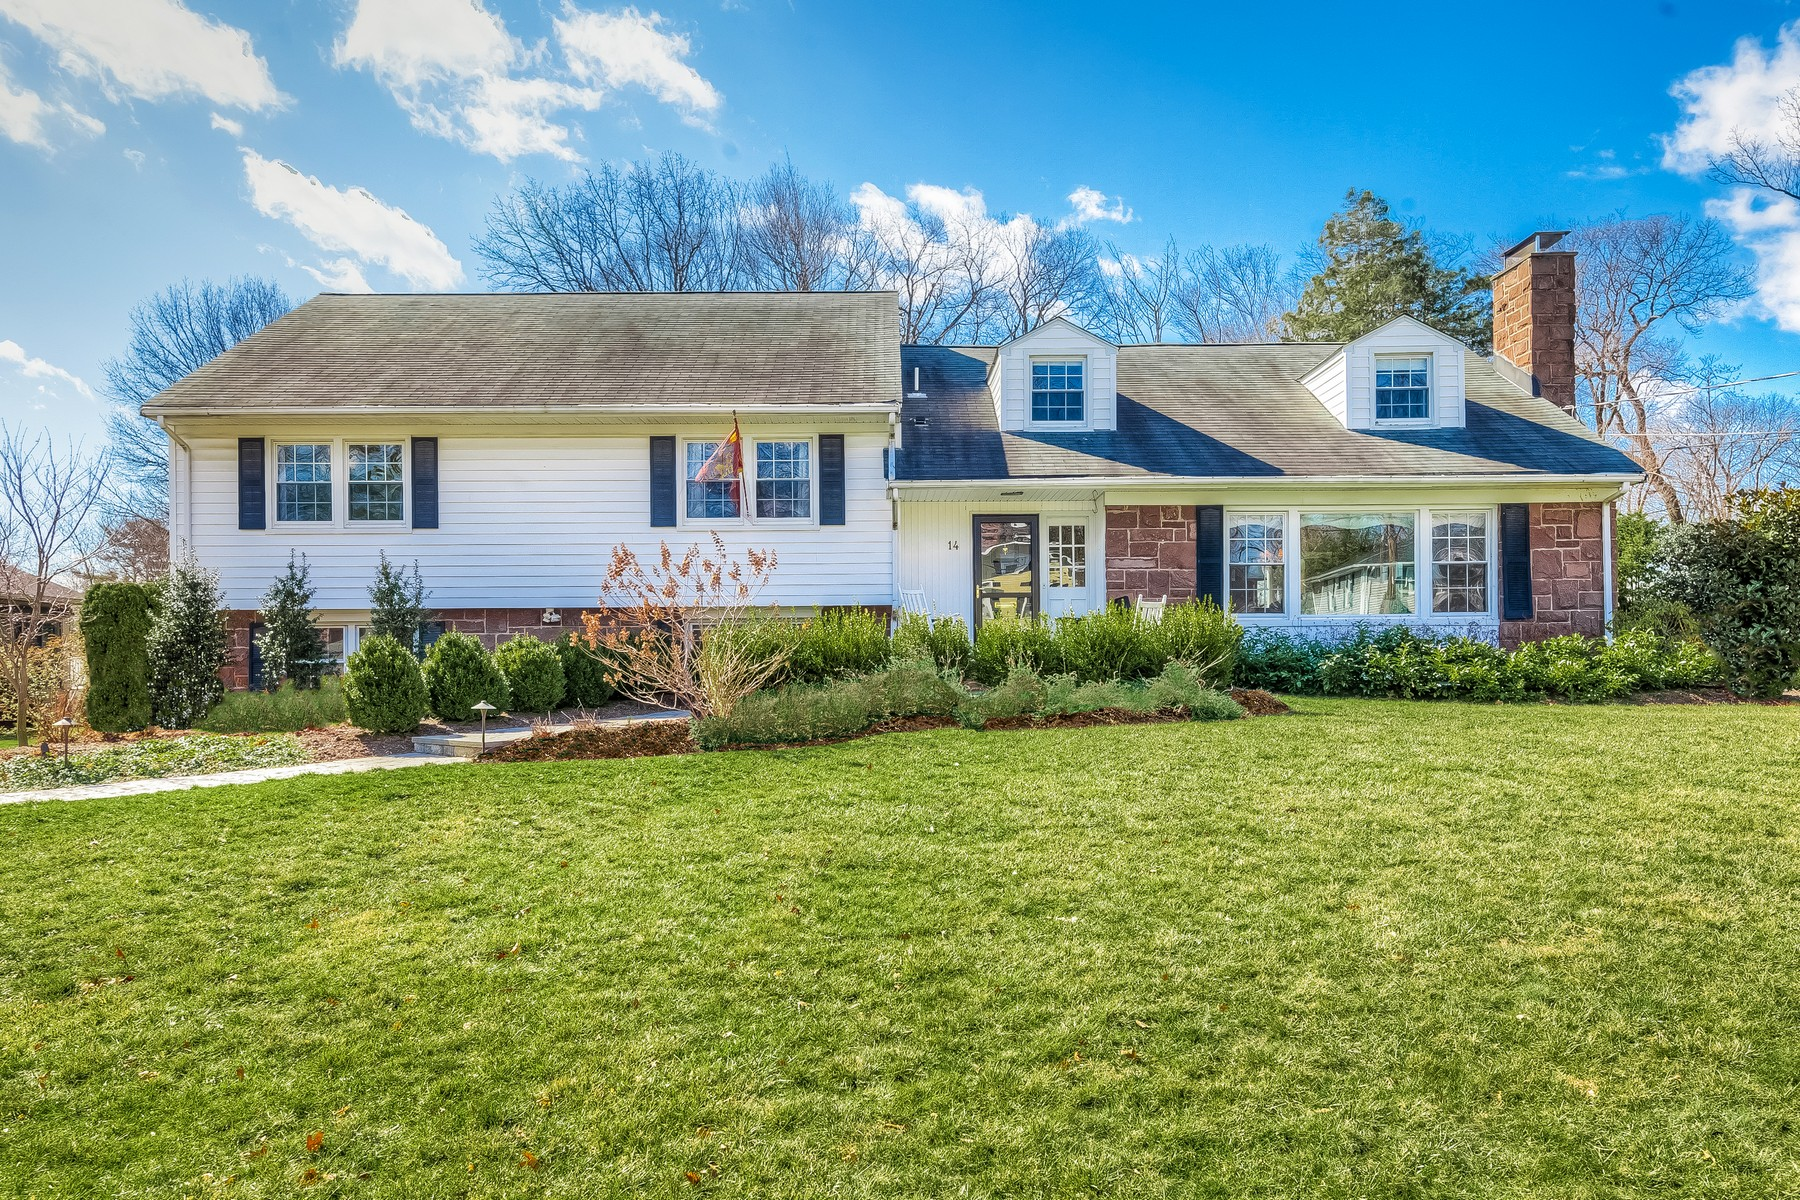 Single Family Home for Sale at Spacious and Updated in the Hill Section 14 Lawrence Road Madison, New Jersey 07940 United States